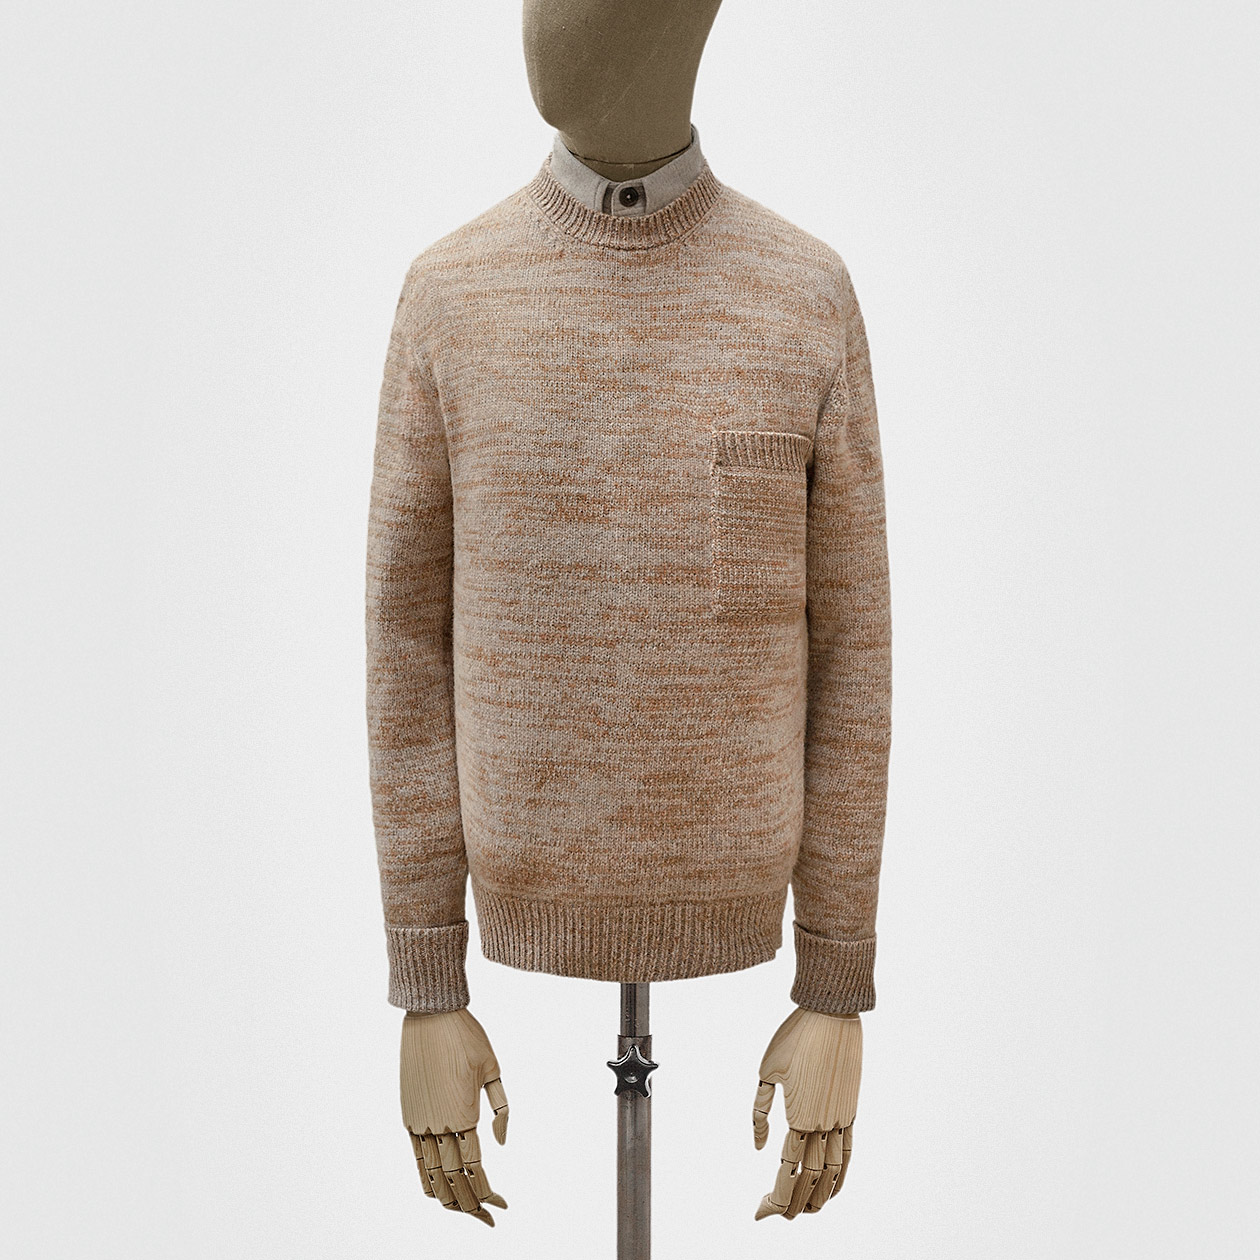 6abee8a551d Crewneck in grey and pine lambswool knit-stitch